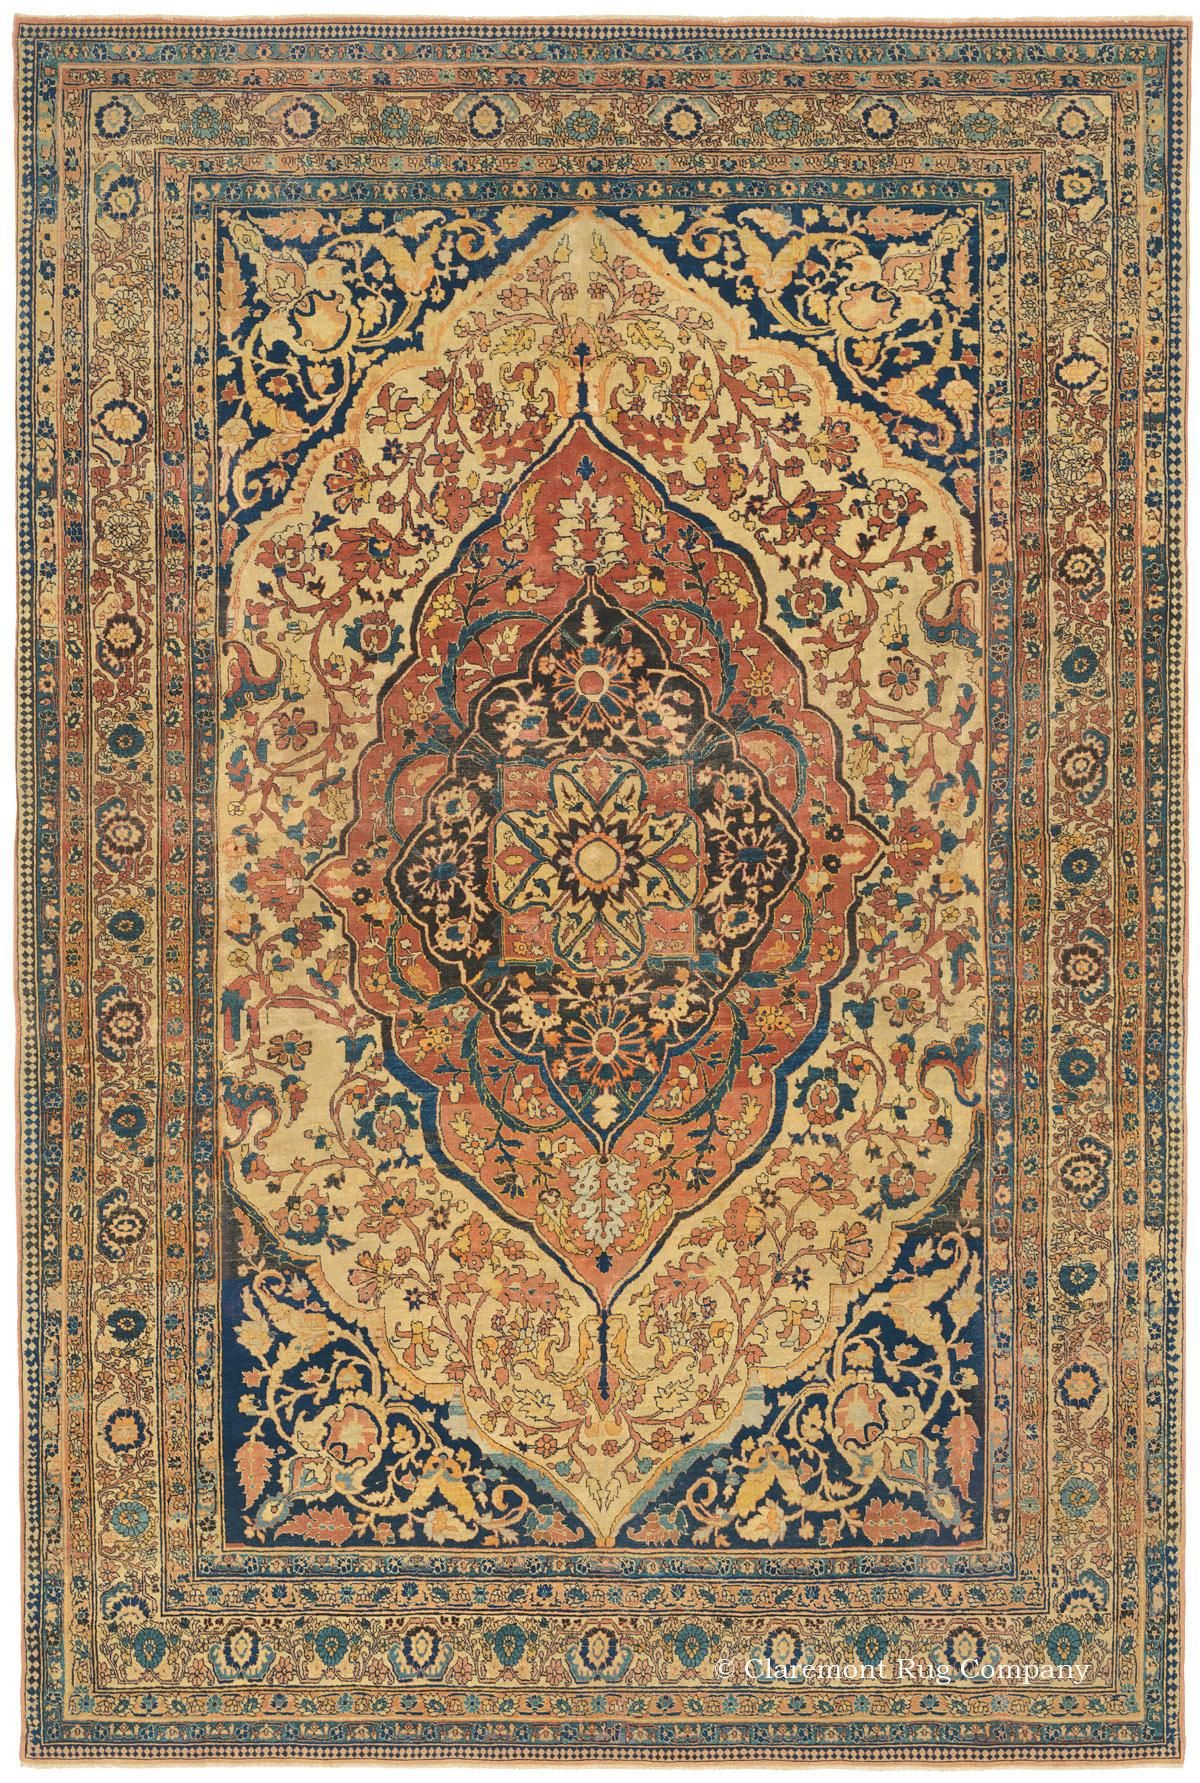 Haji Jalili Tabriz Antique Carpet With Apricot Hues Antique Persian Carpet Persian Rug Designs Antique Carpets